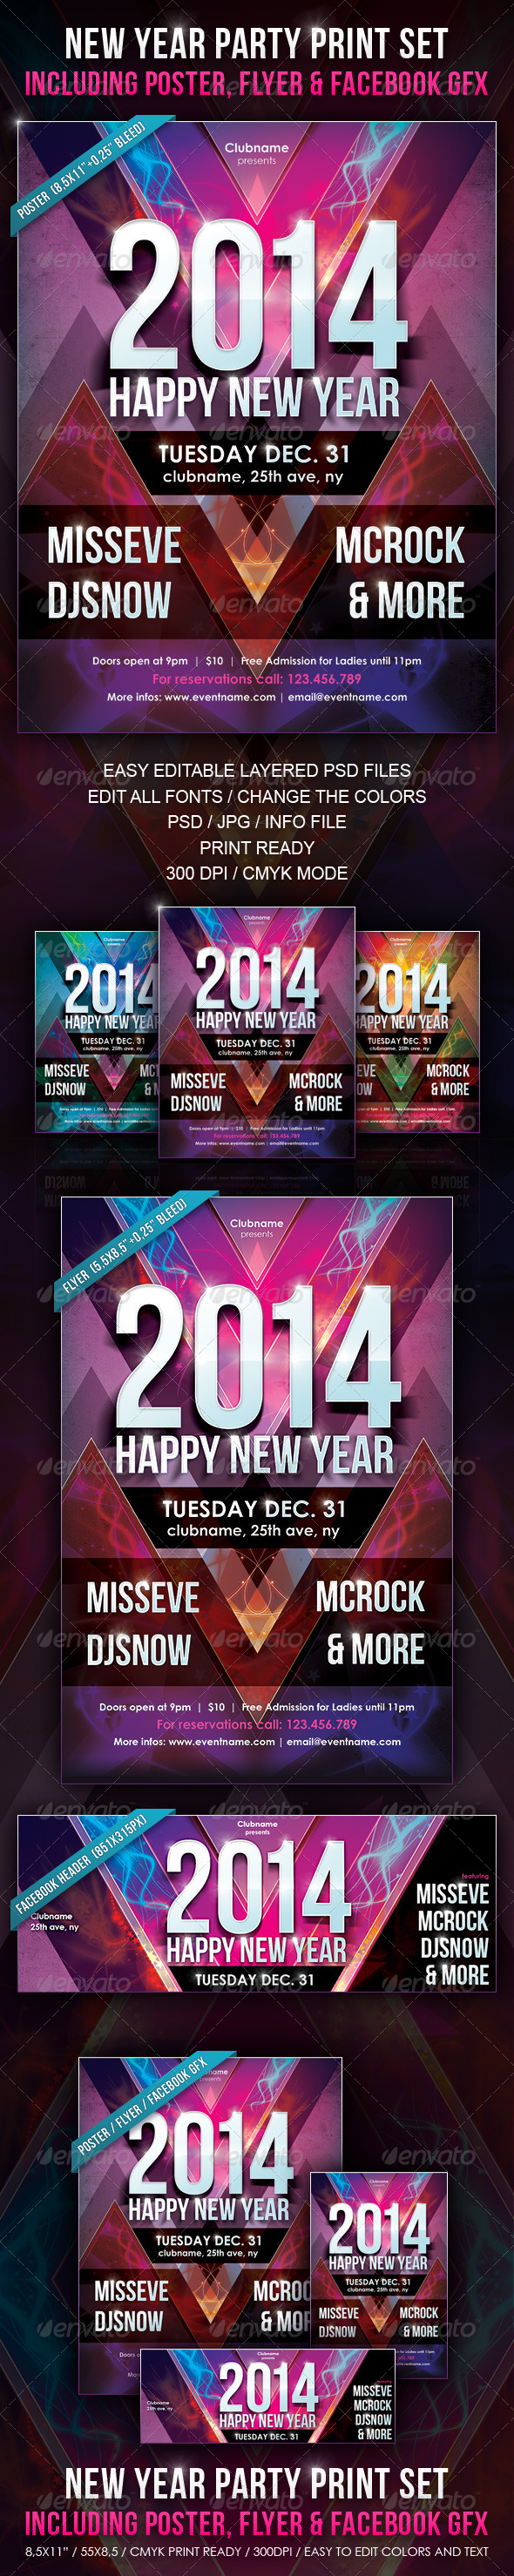 New Year Party Print Set  Facebook Header Psd Templates And